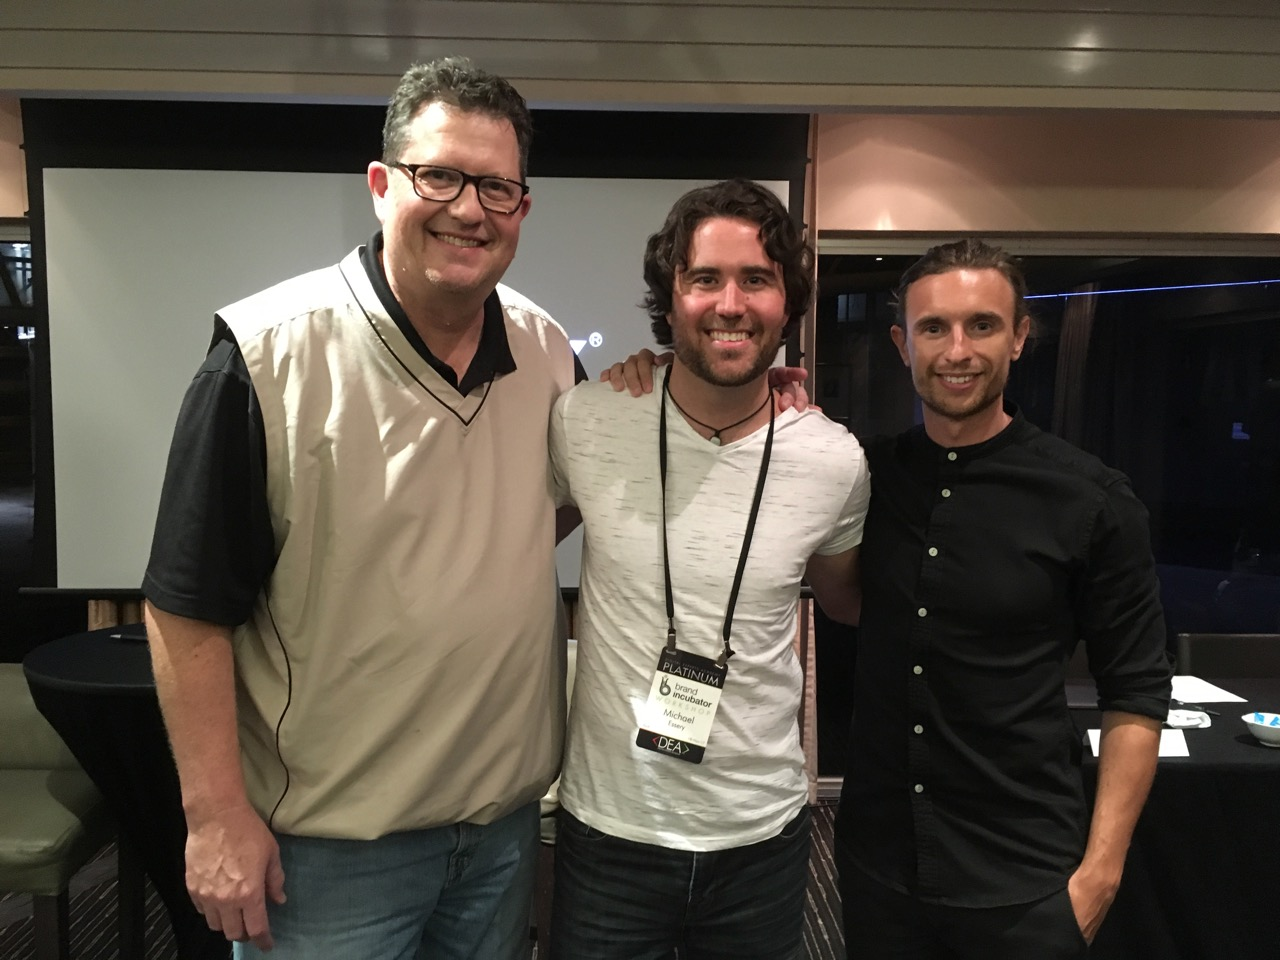 Me with John Jackson (founder of Pinpoint Your Purpose) and Alexander Eastman (founder of Tolado)